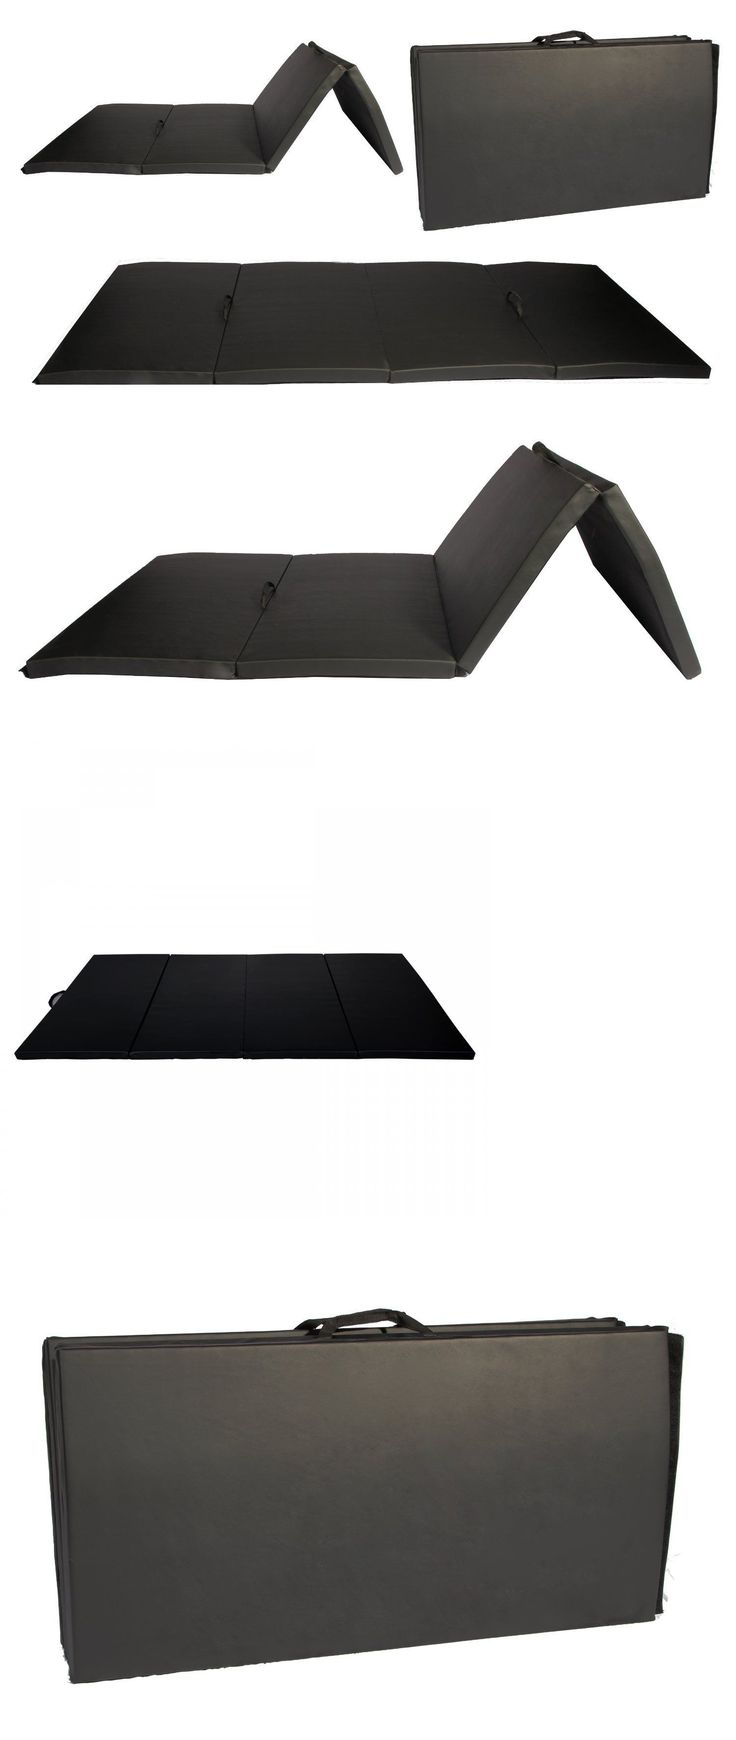 Exercise Mats 44079: New 4 X8 X2 Thick Folding Panel Gymnastic Tumbling Martial Arts Exercise Mats26 -> BUY IT NOW ONLY: $49.86 on eBay!